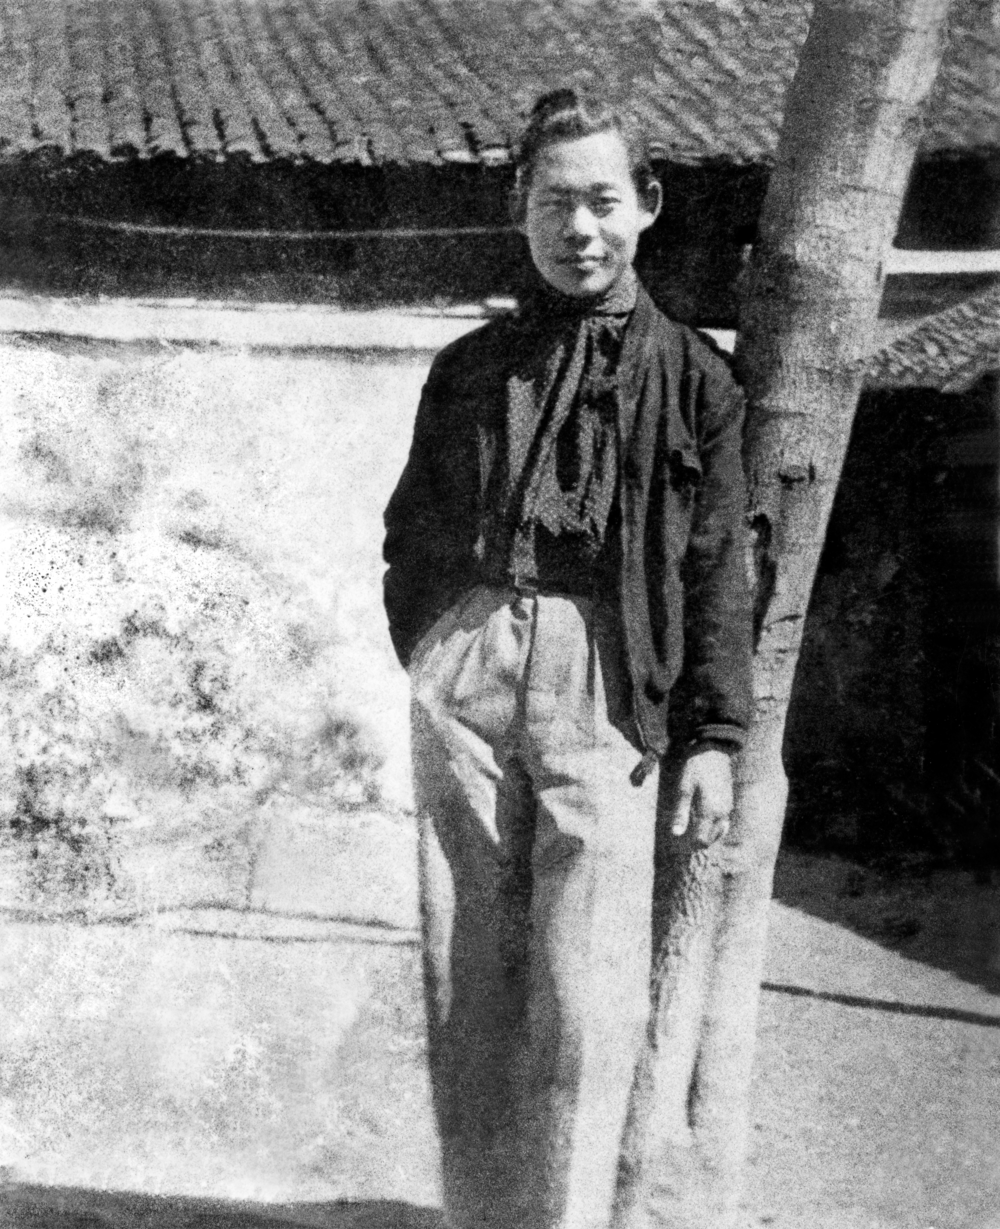 Zao Wou-Ki at the Fine Arts School in Hangzhou, 1935. All rights reserved